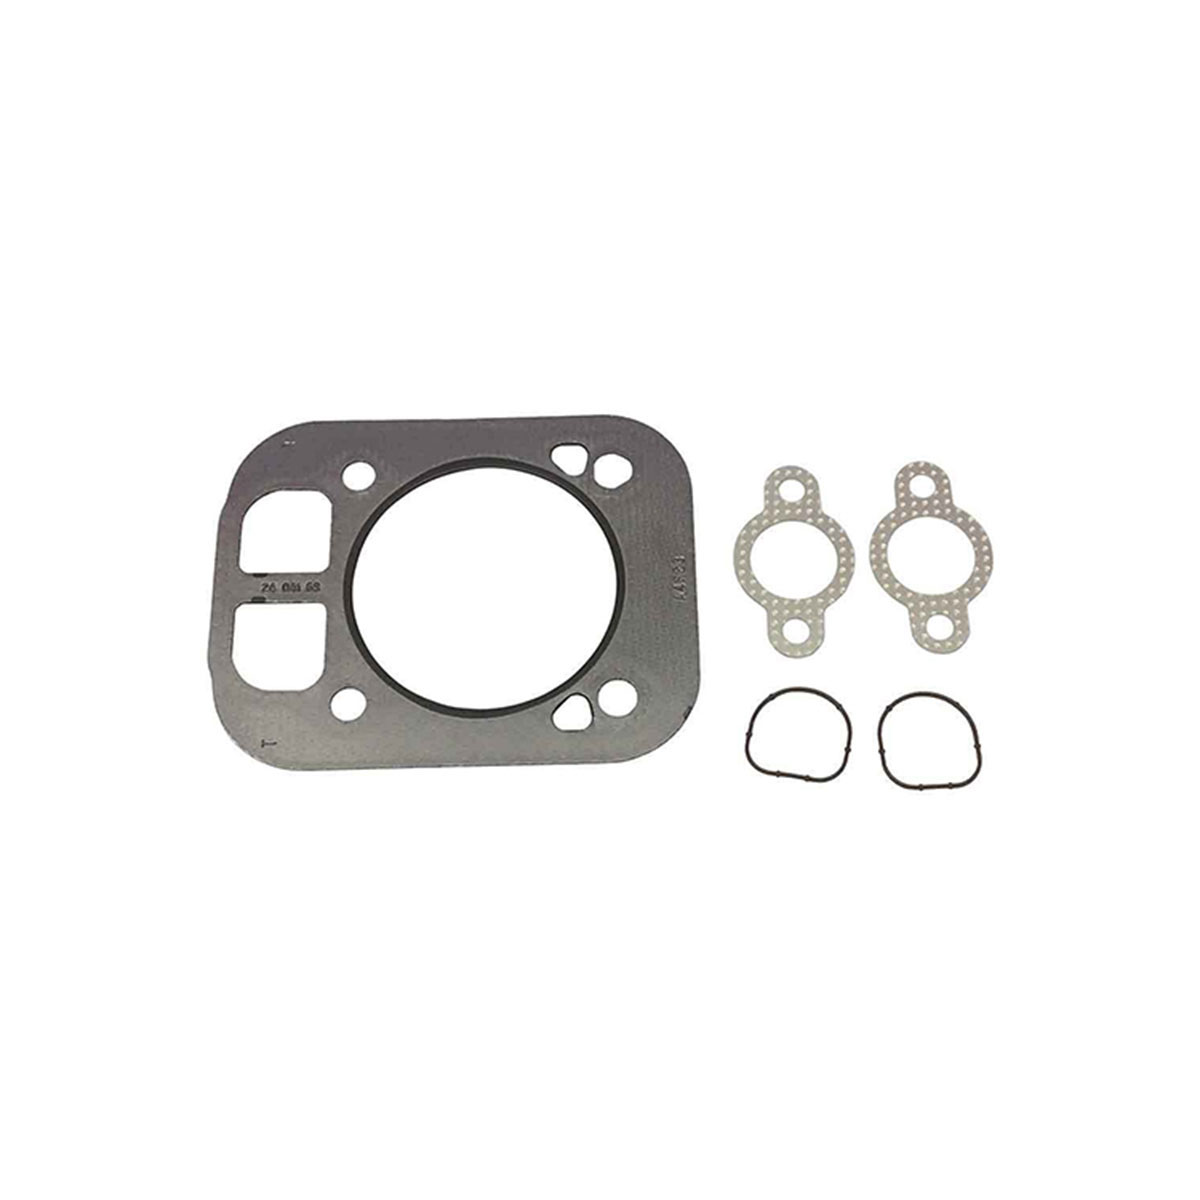 cylinder head gasket kit kh-32-841-02-s